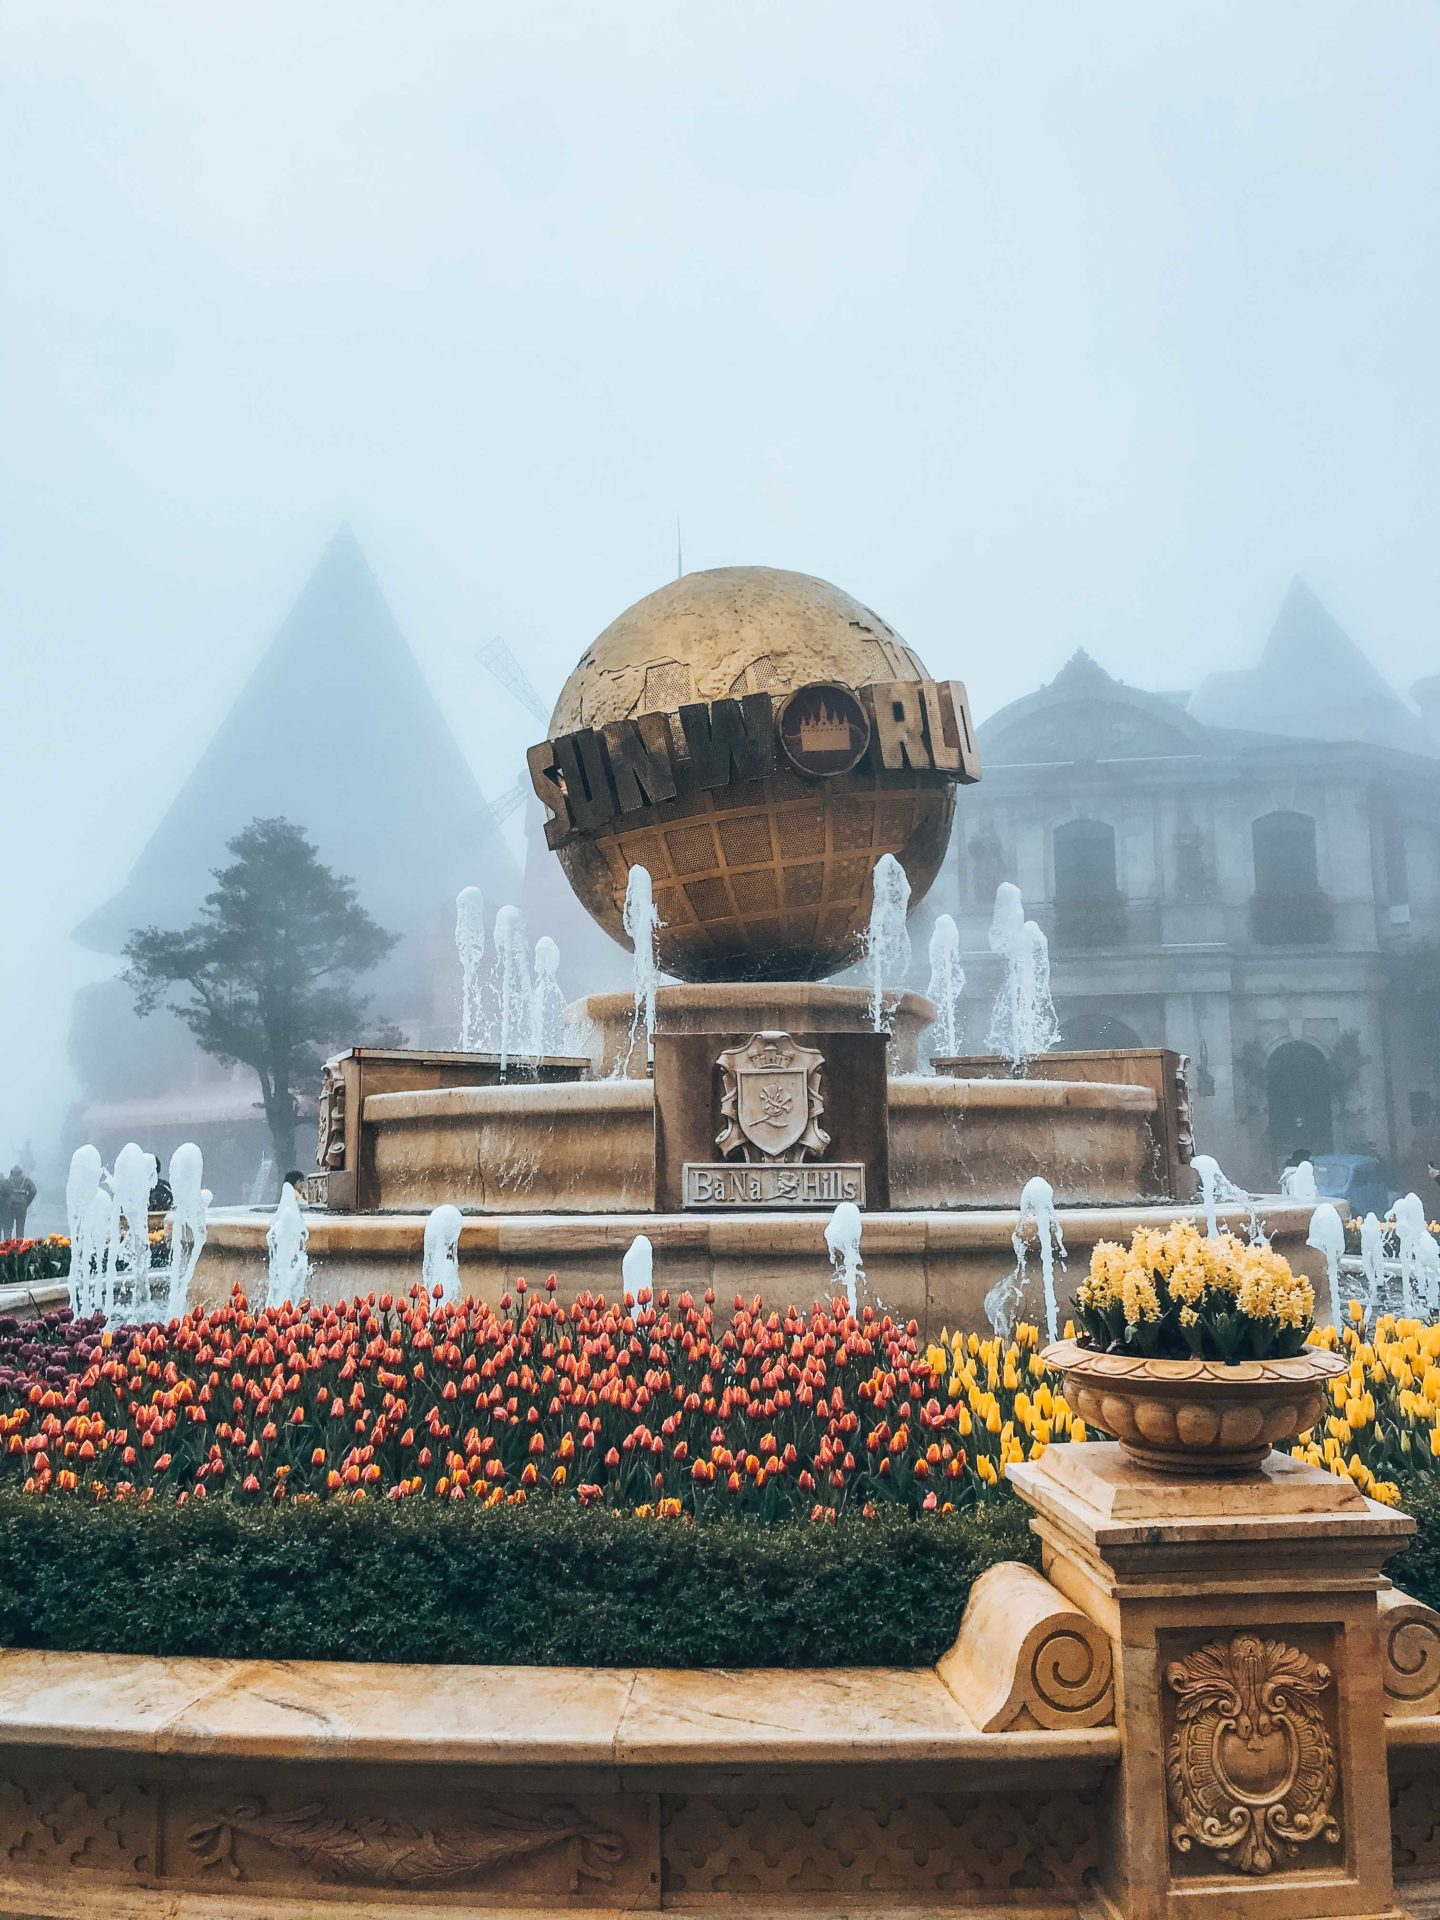 Sun World entrance fountain in the French Village of Ba Na Hills, Da Nang, Vietnam